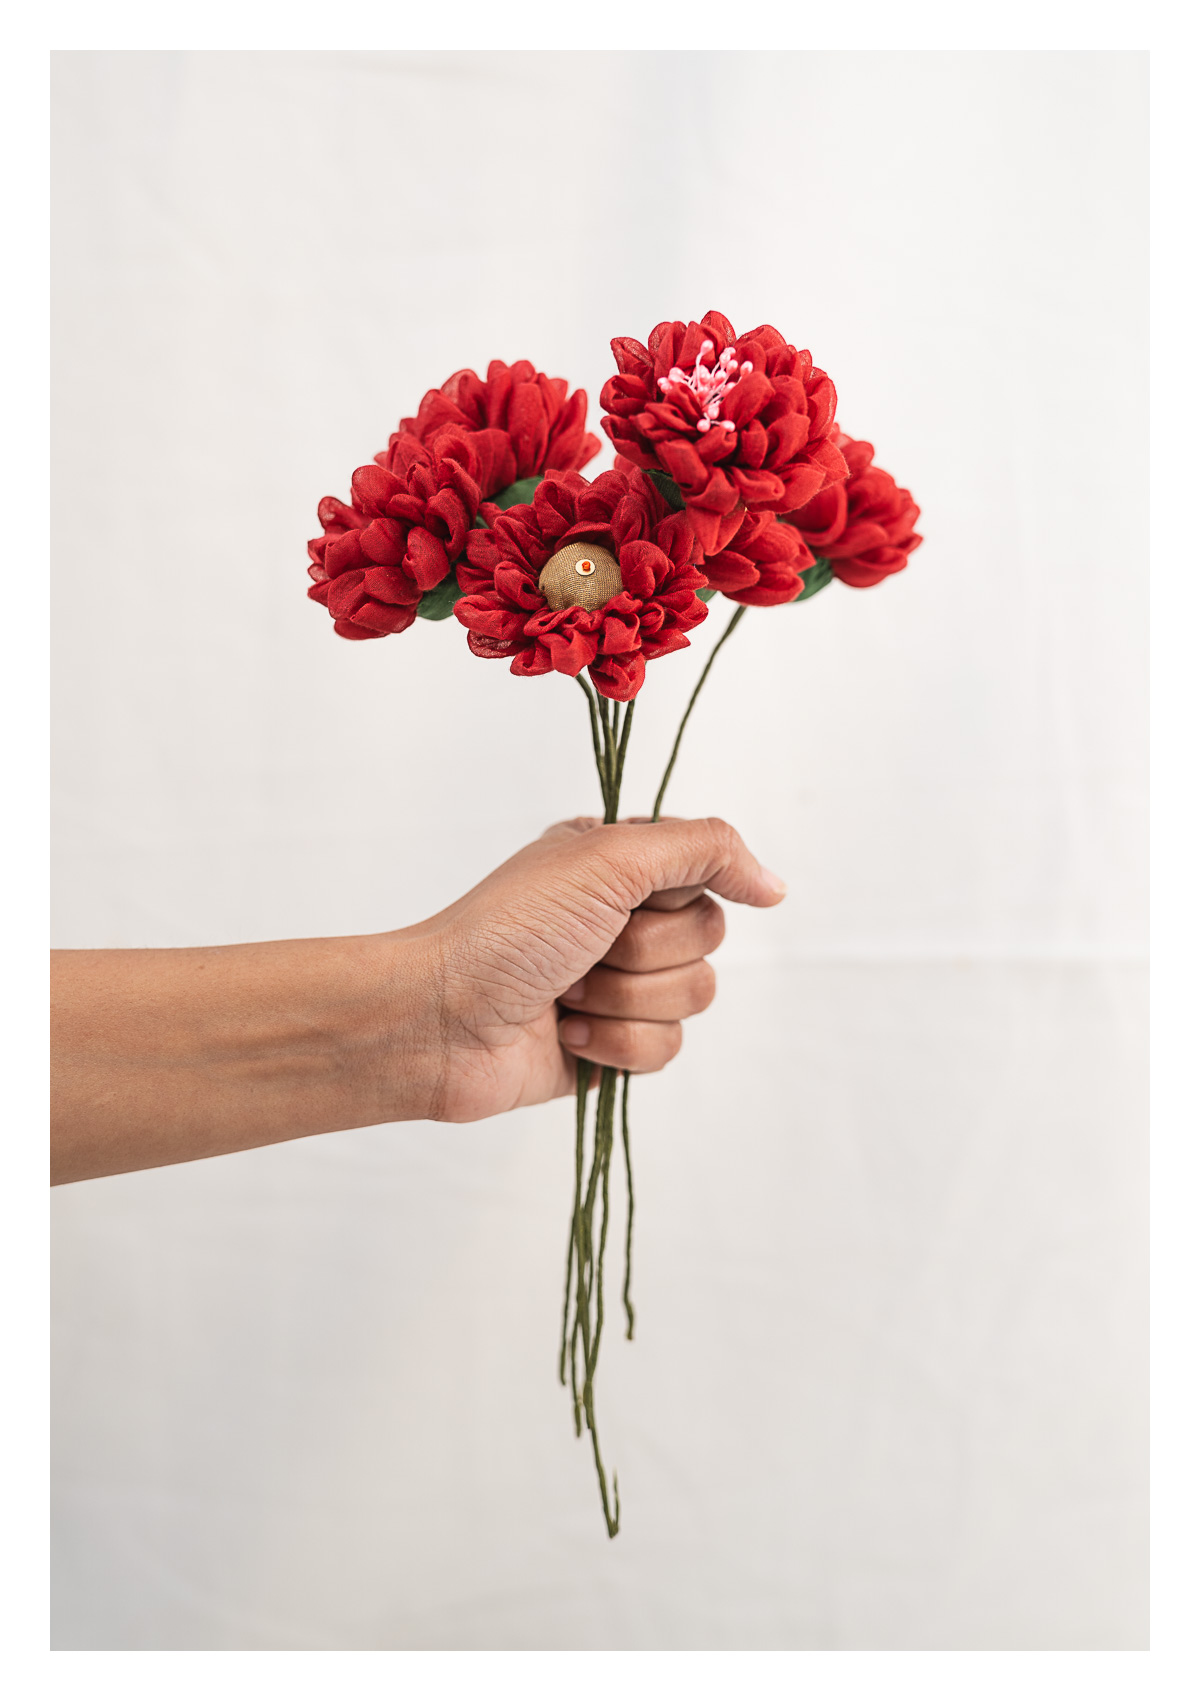 Carnation Red Textile Flowers Bunch